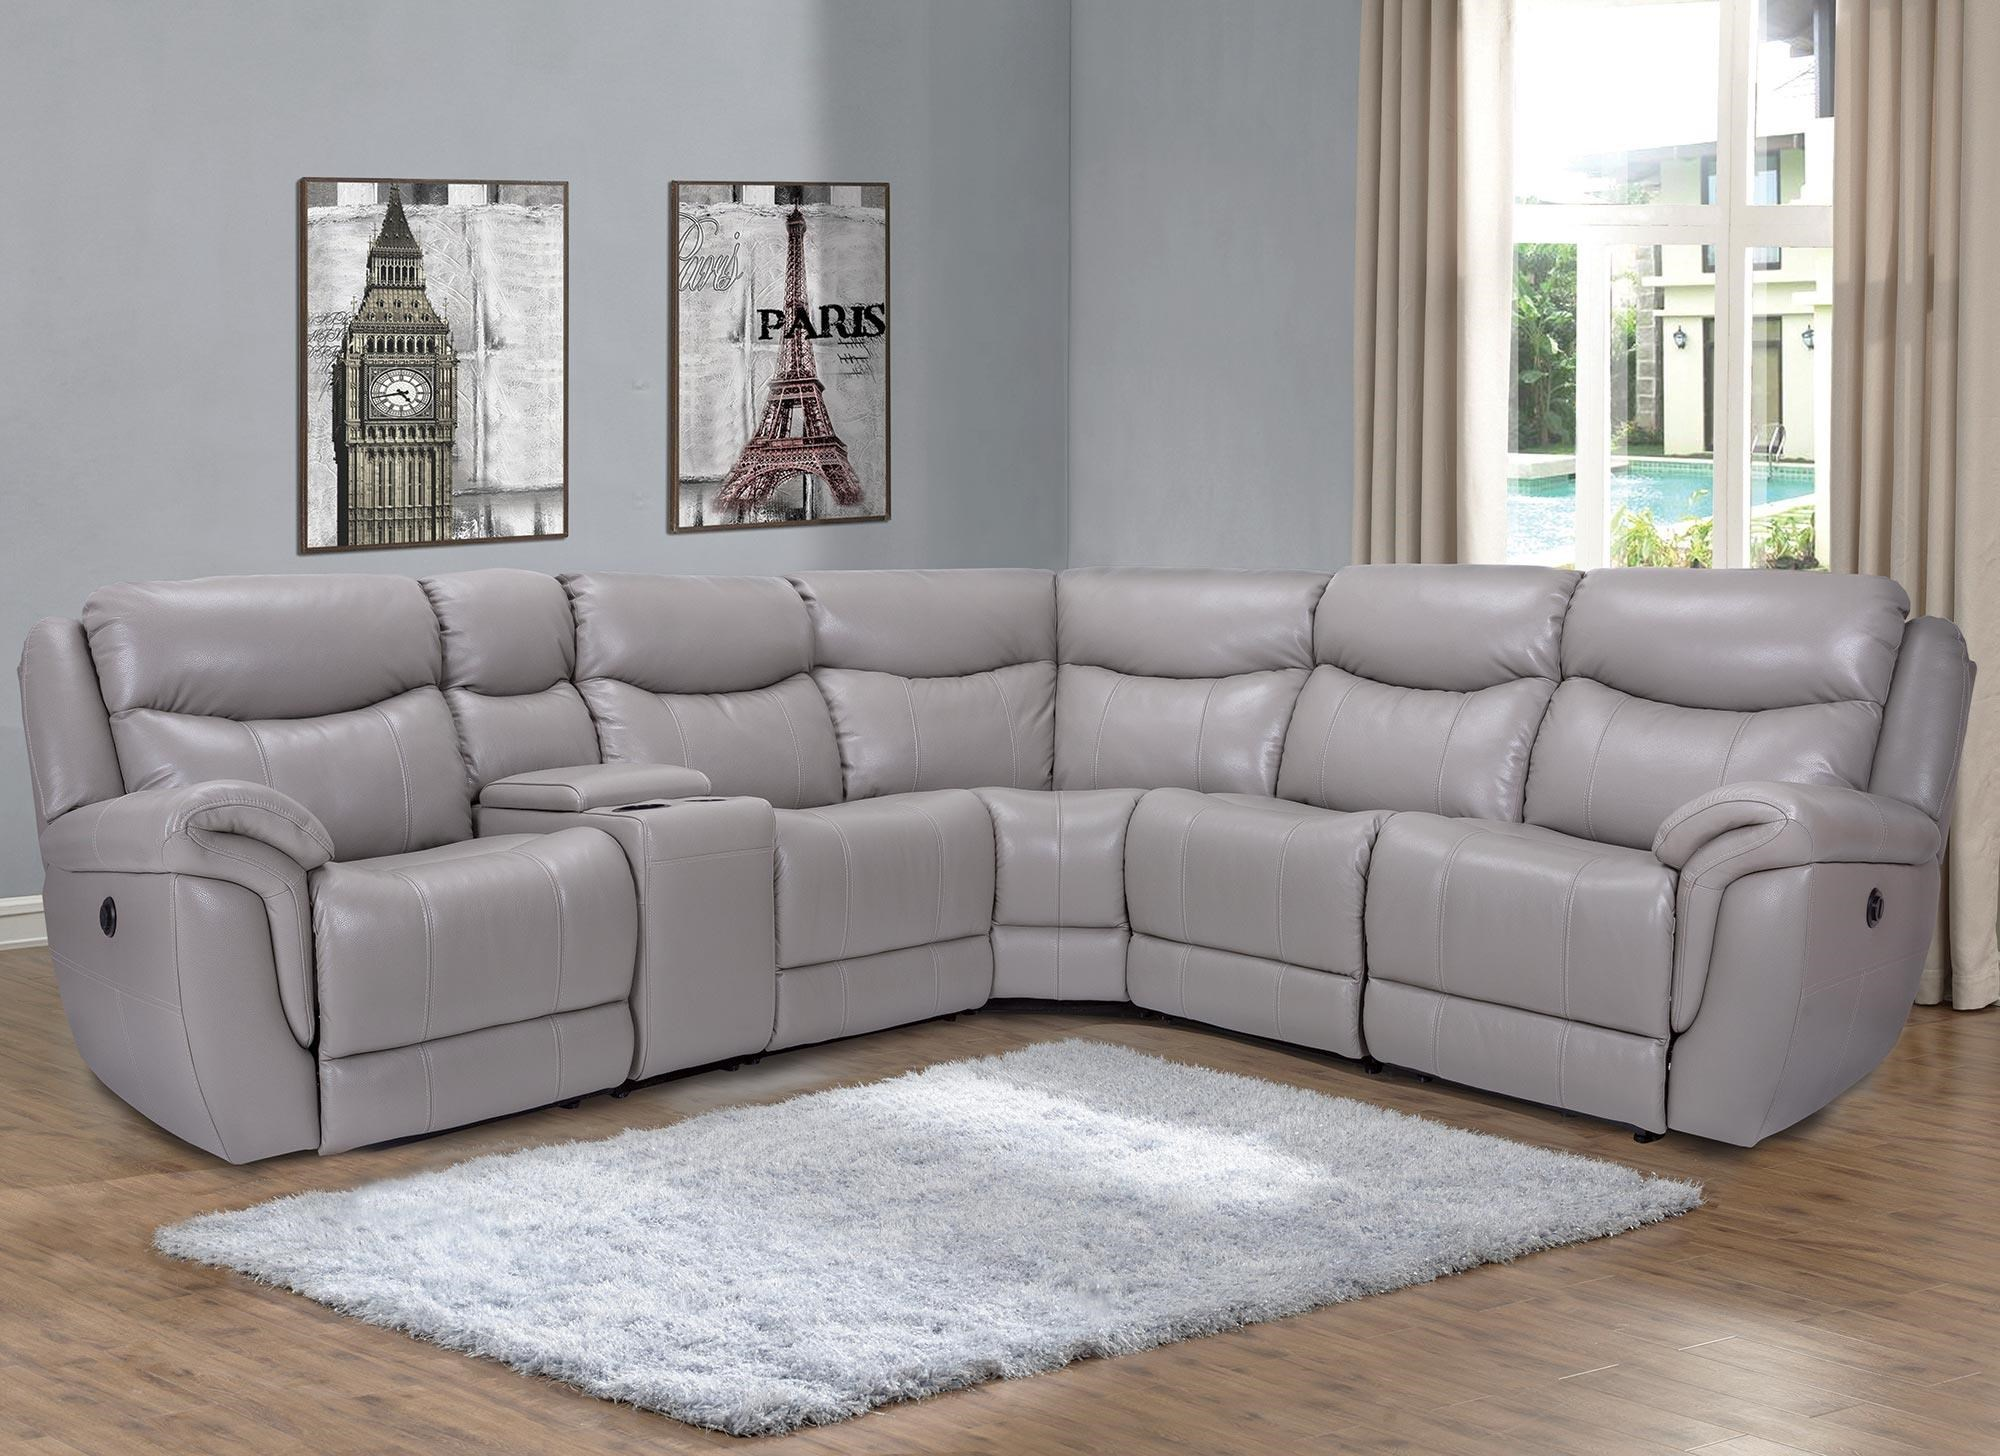 trieste 6pc power reclining leather sectional rotmans reclining rh rotmans com power reclining leather sectional sofas small leather reclining sectional sofas